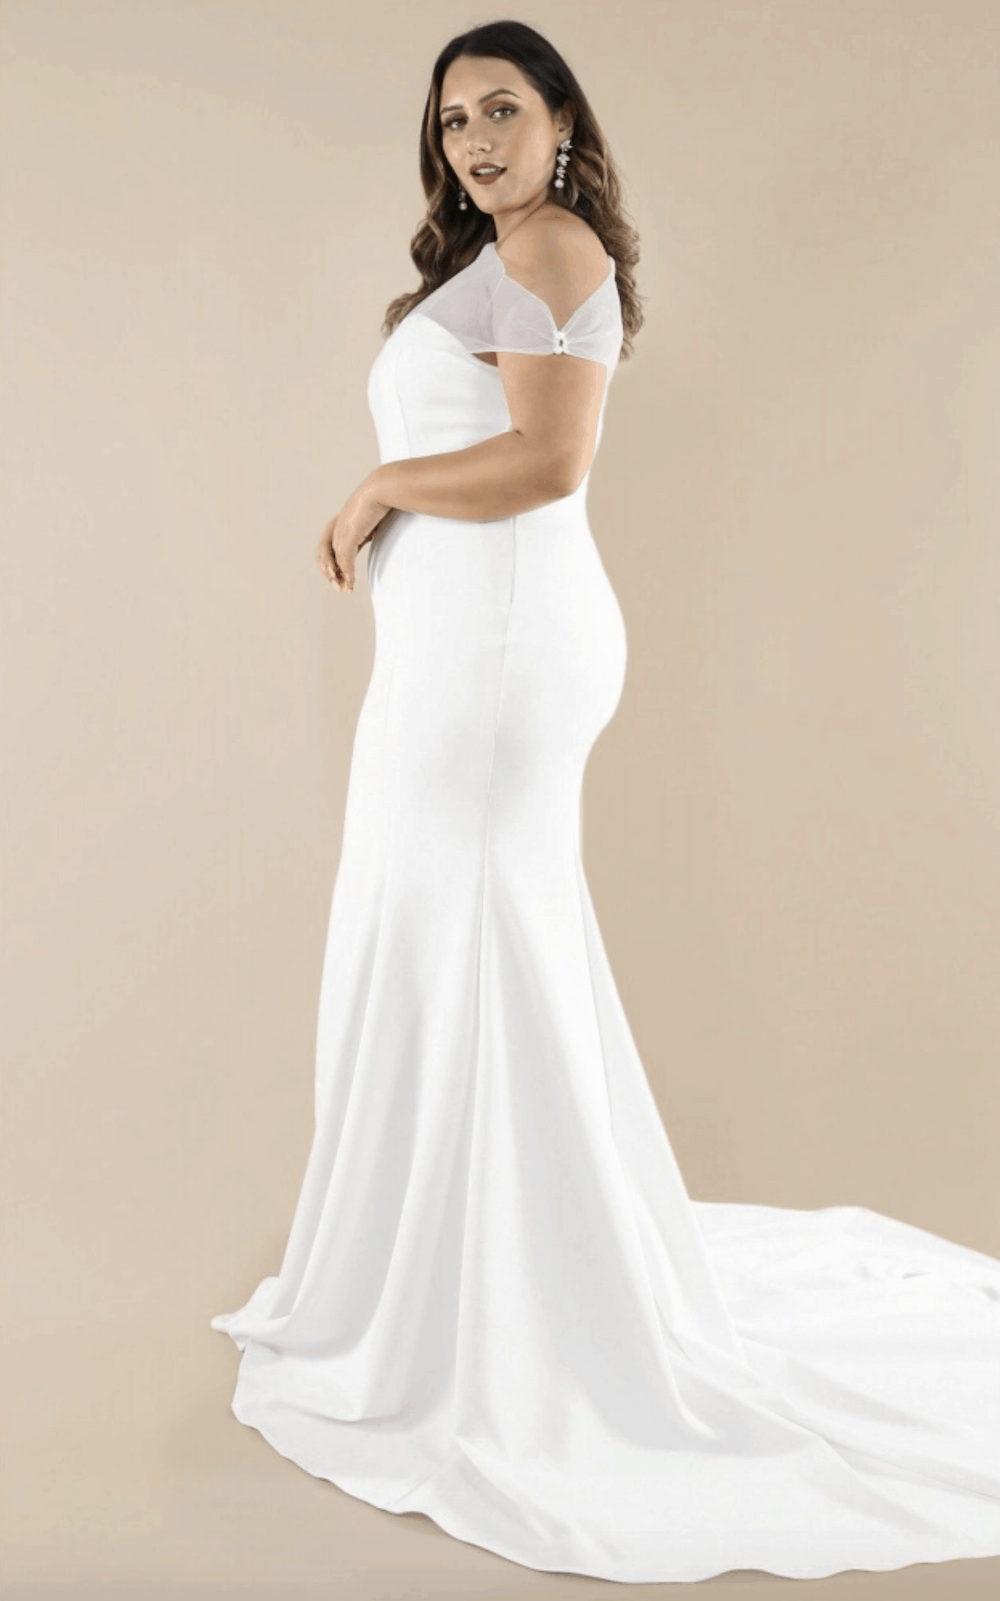 Plus Size Bridal Gowns and Wedding Dresses Perfect for Curvy Brides Mesh Shoulder Bodice 2